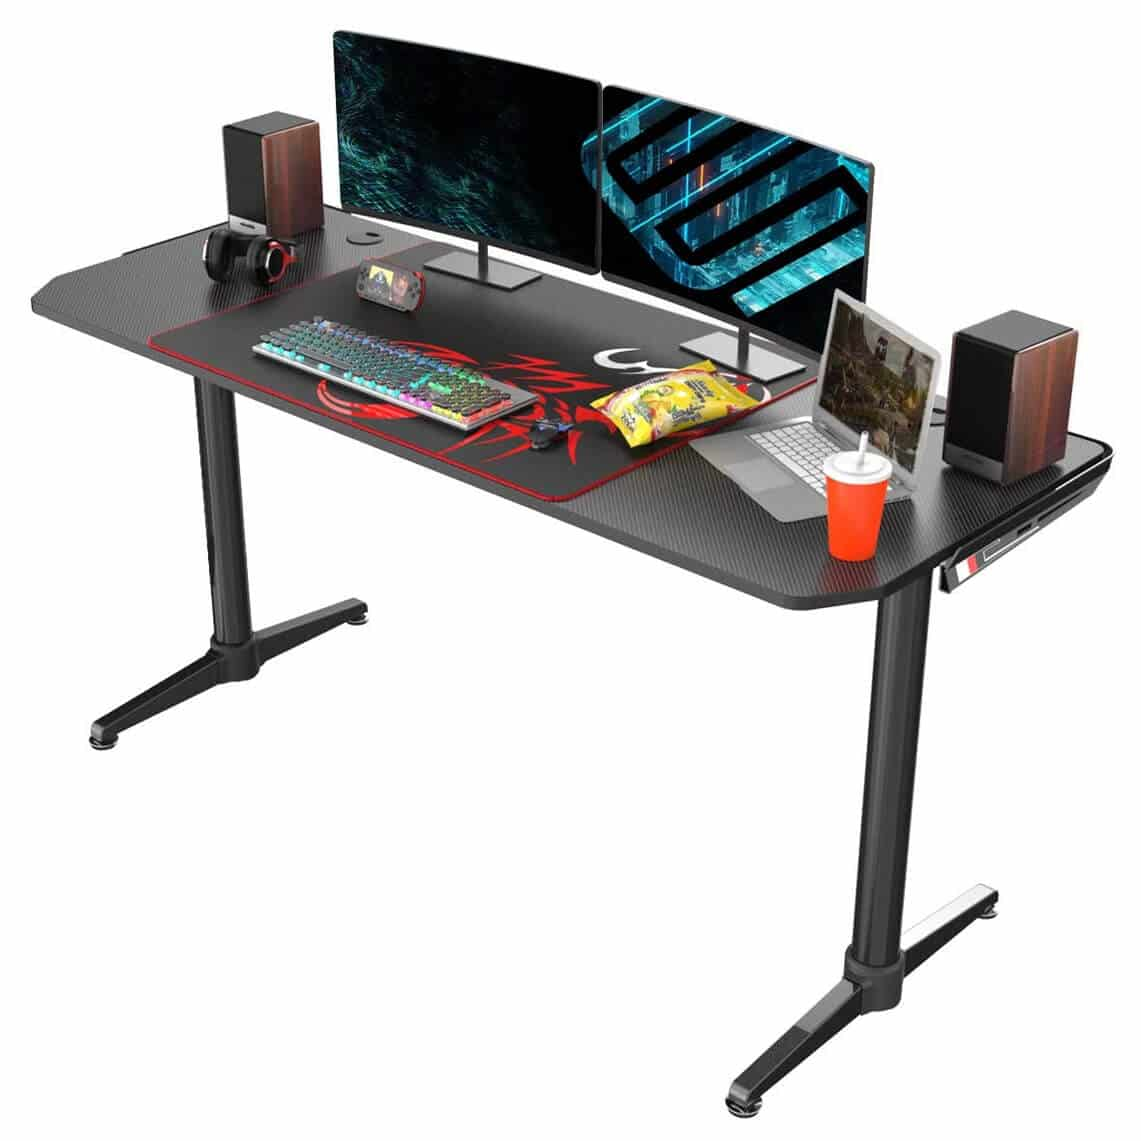 Eureka Ergonomic I60 Computer Gaming Desk 60